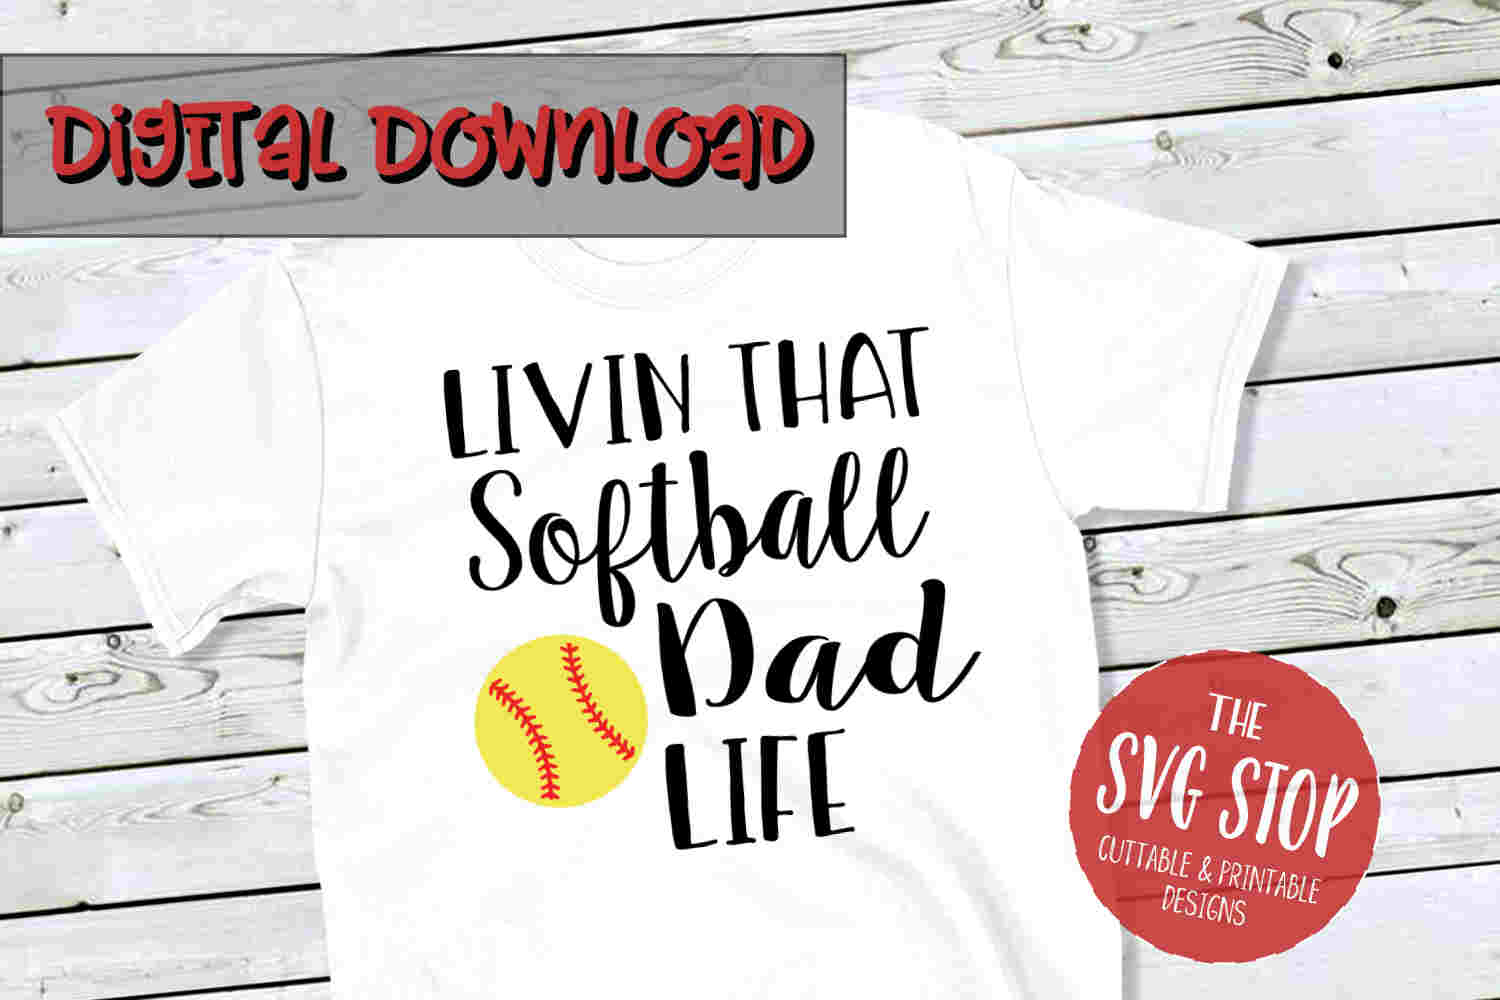 Softball Dad Life -SVG, PNG, DXF example image 1